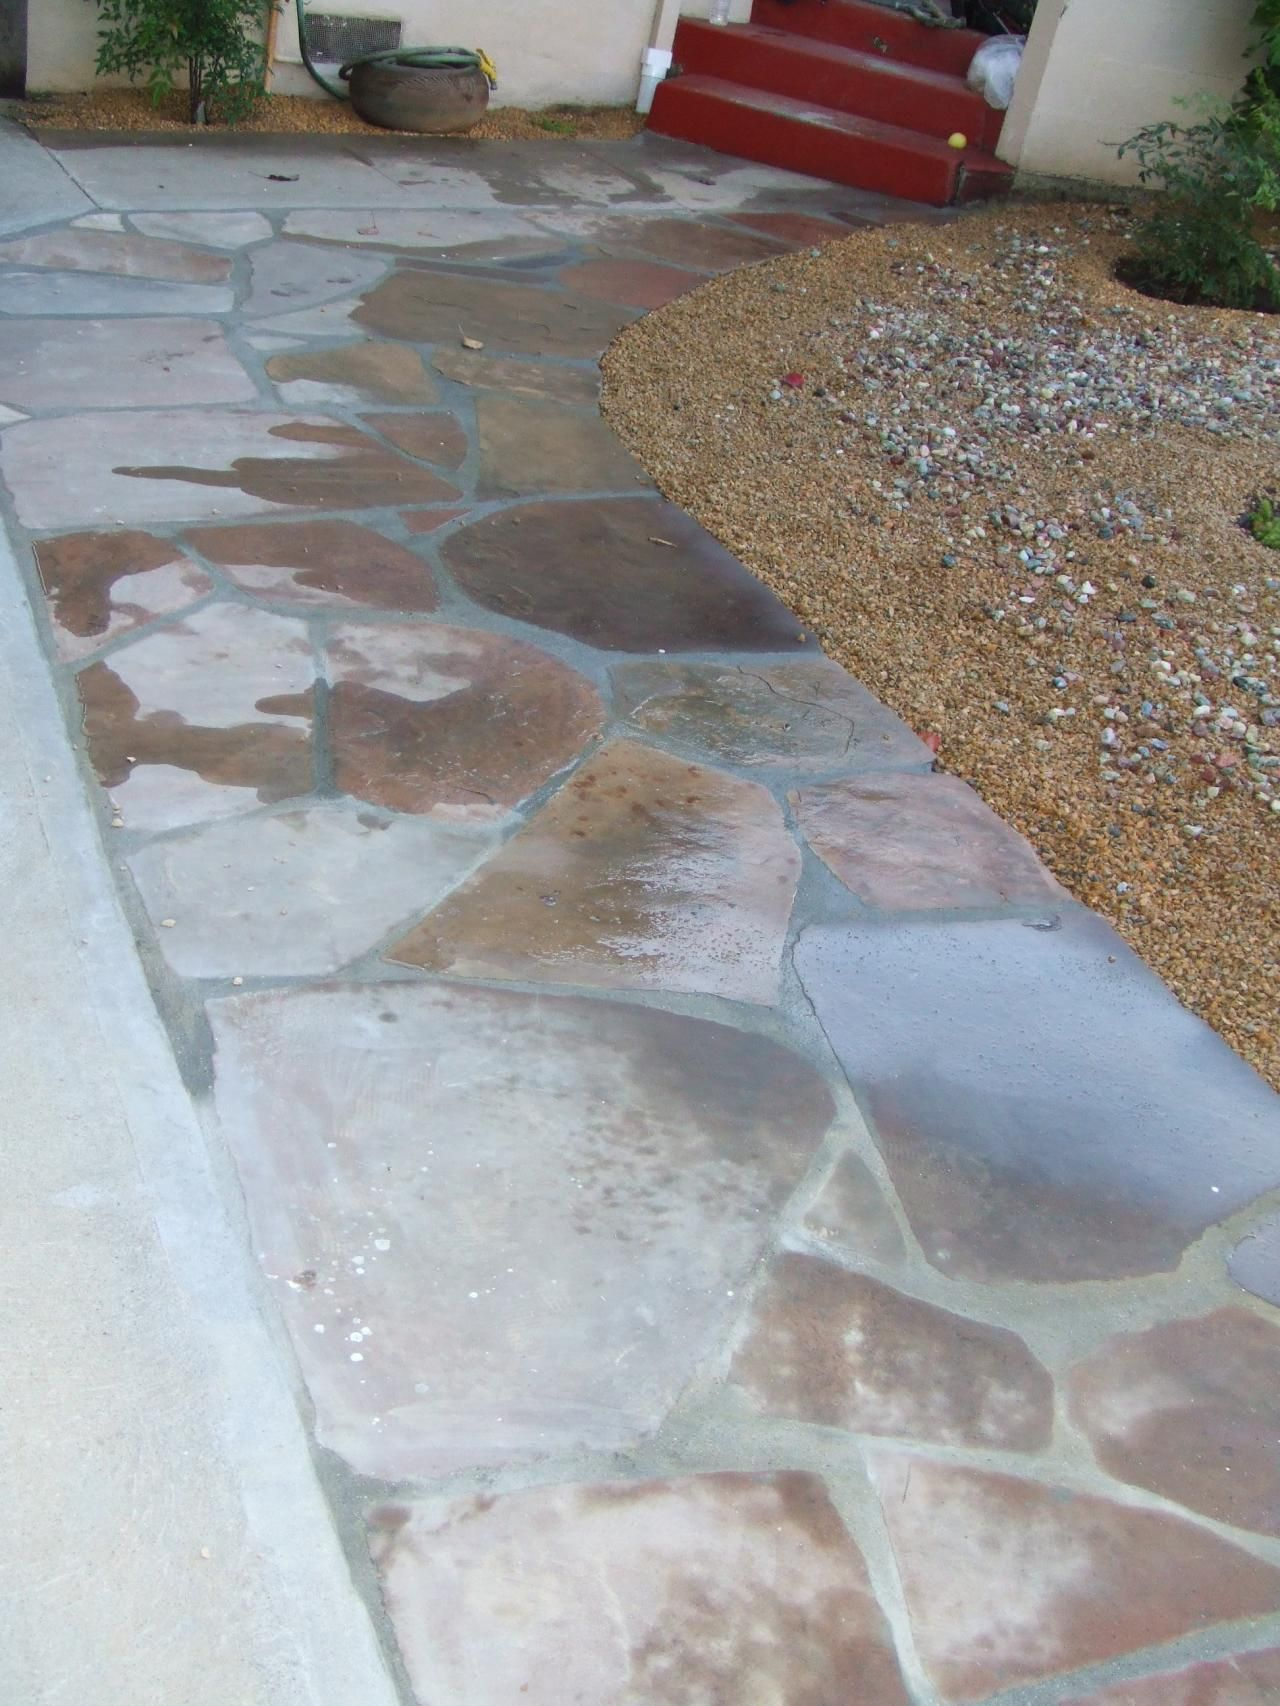 kathy's landscaping - Current projects